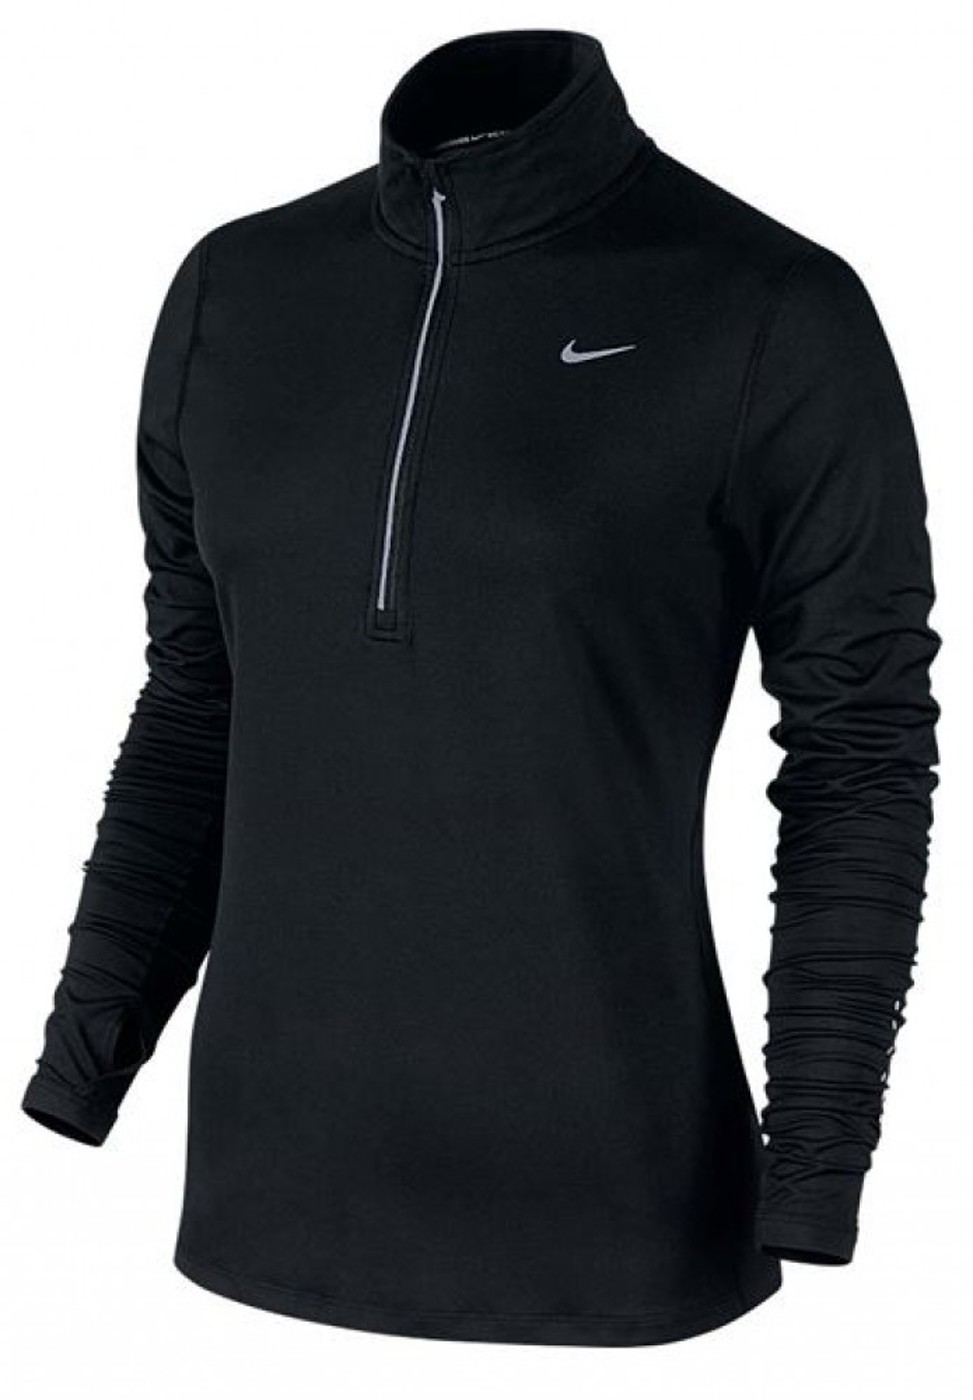 NIKE Shirt ELEMENT 1/2 Zip - Damen